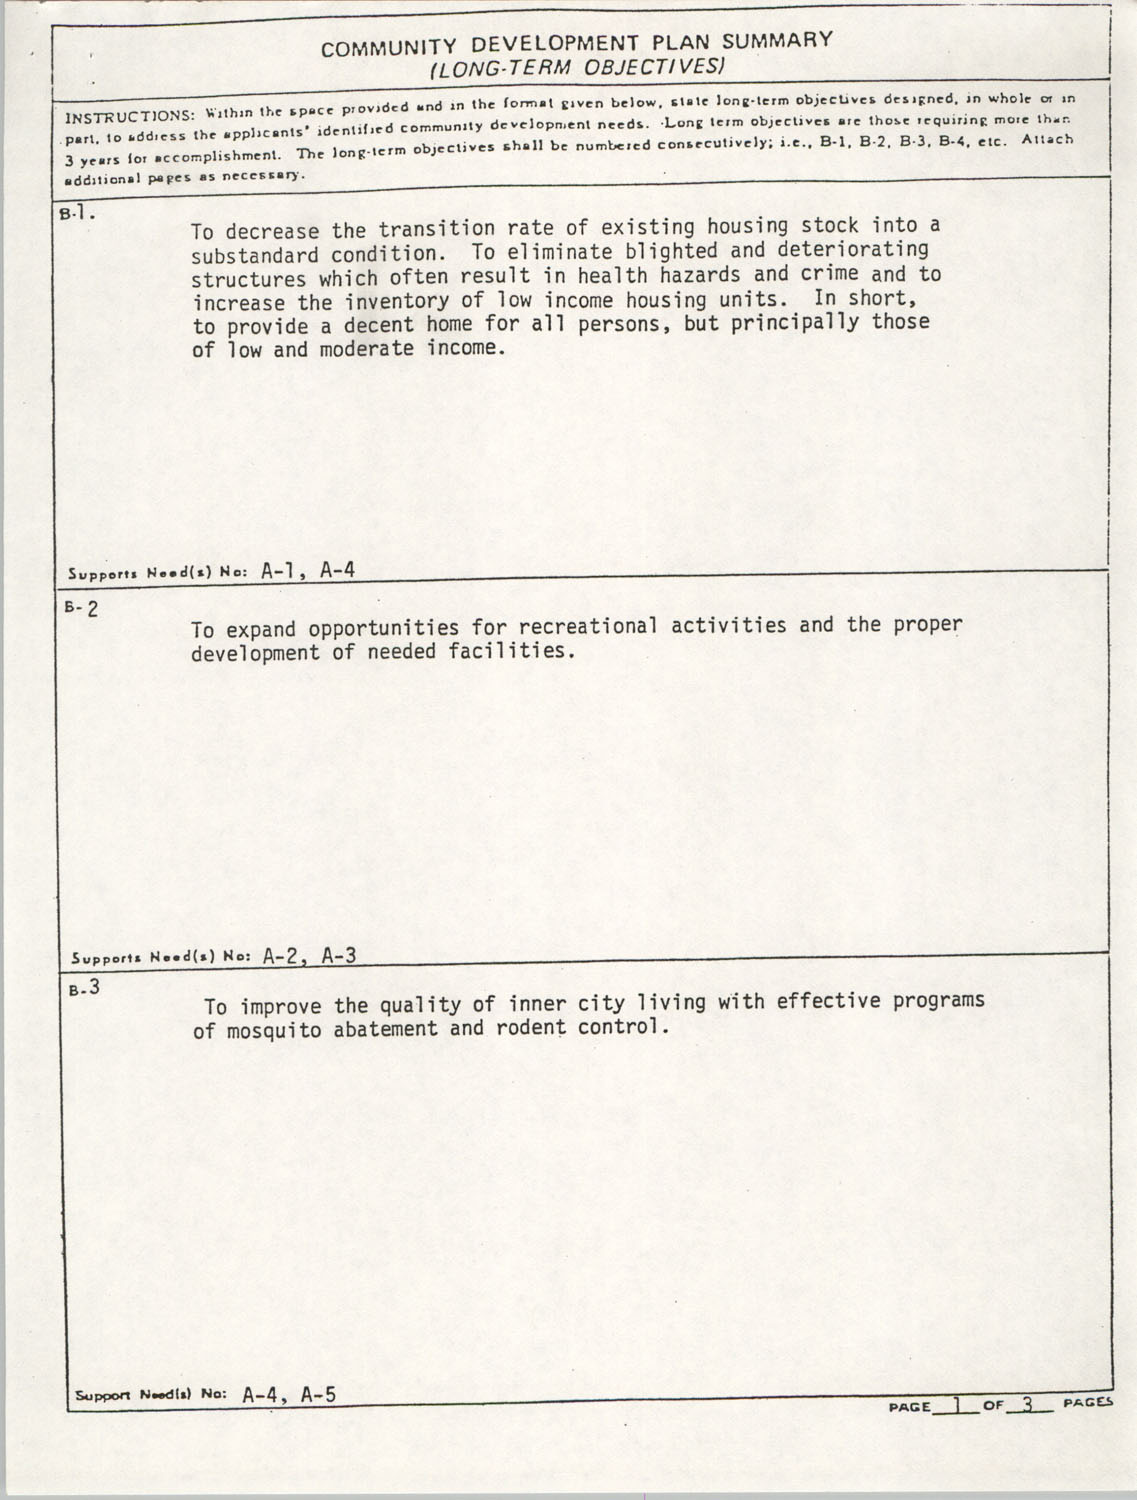 Community Development Act Columbia, South Carolina Materials, South Carolina,  Page 5